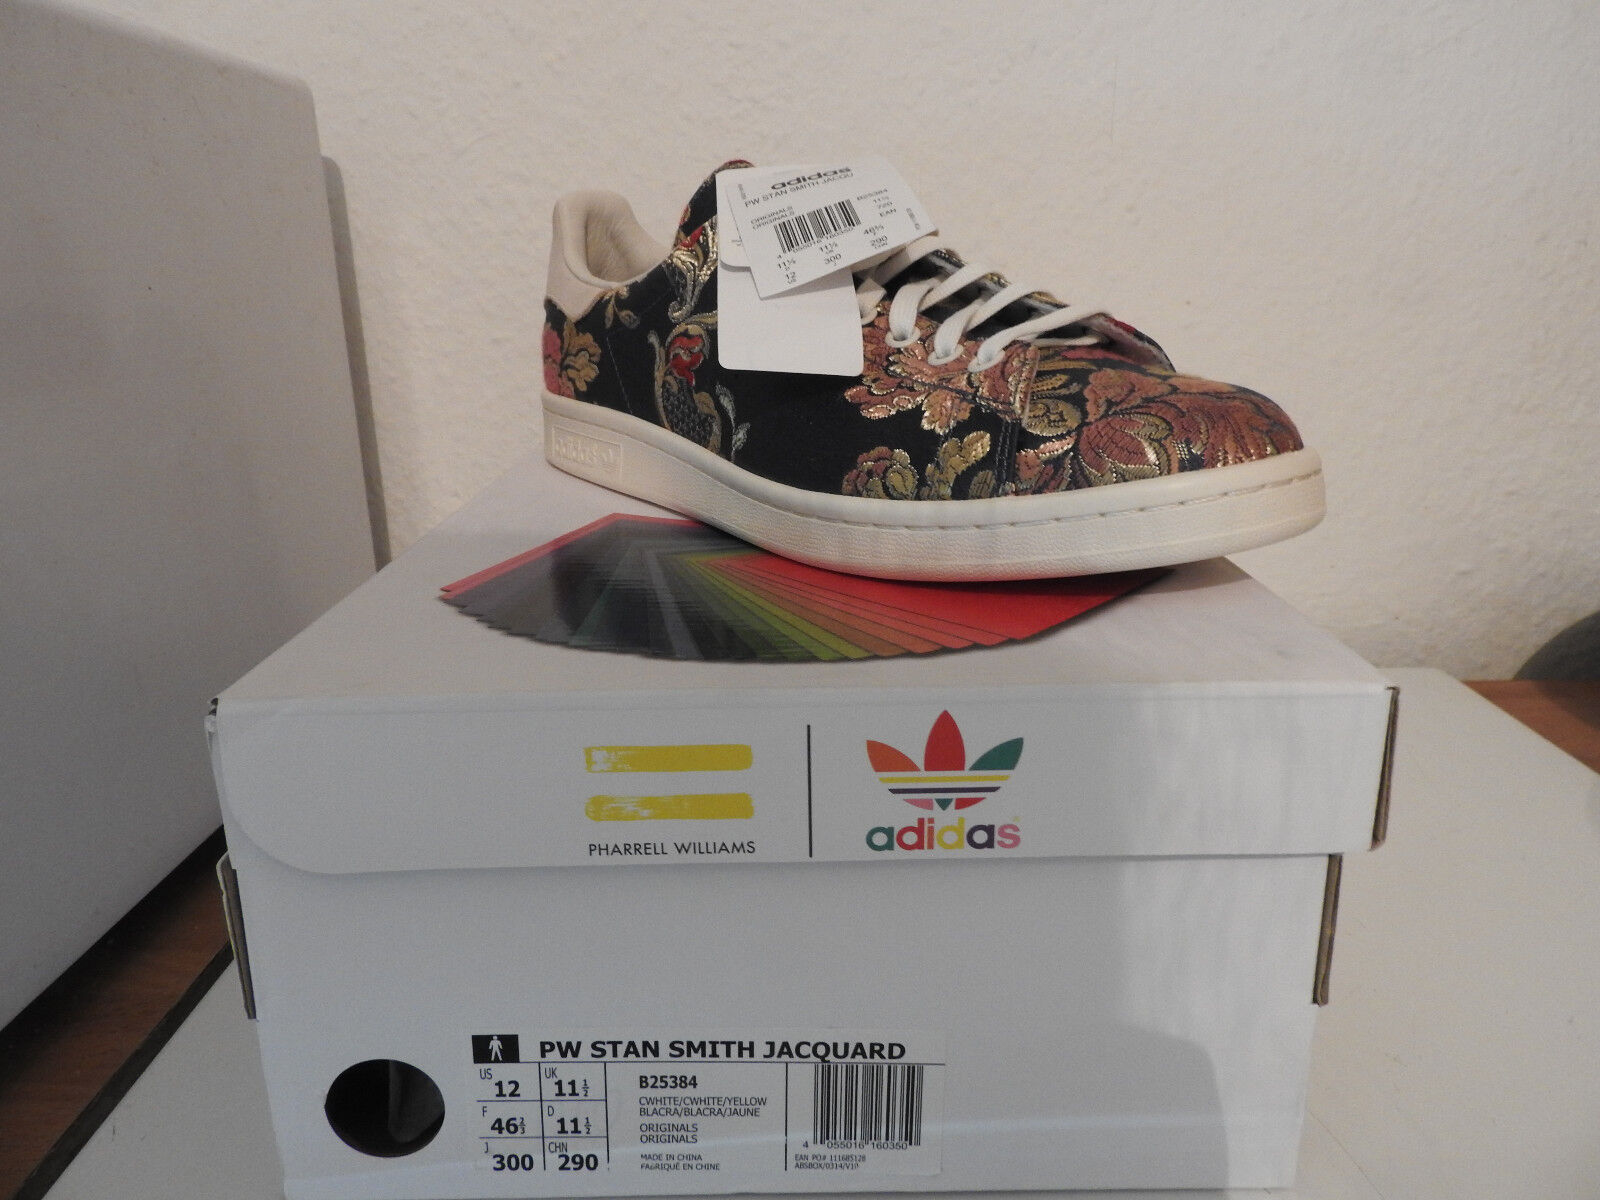 NEU Adidas x Pharrell Williams Stan Smith Jacquard Gr. US 12 (46 2 3) B25384